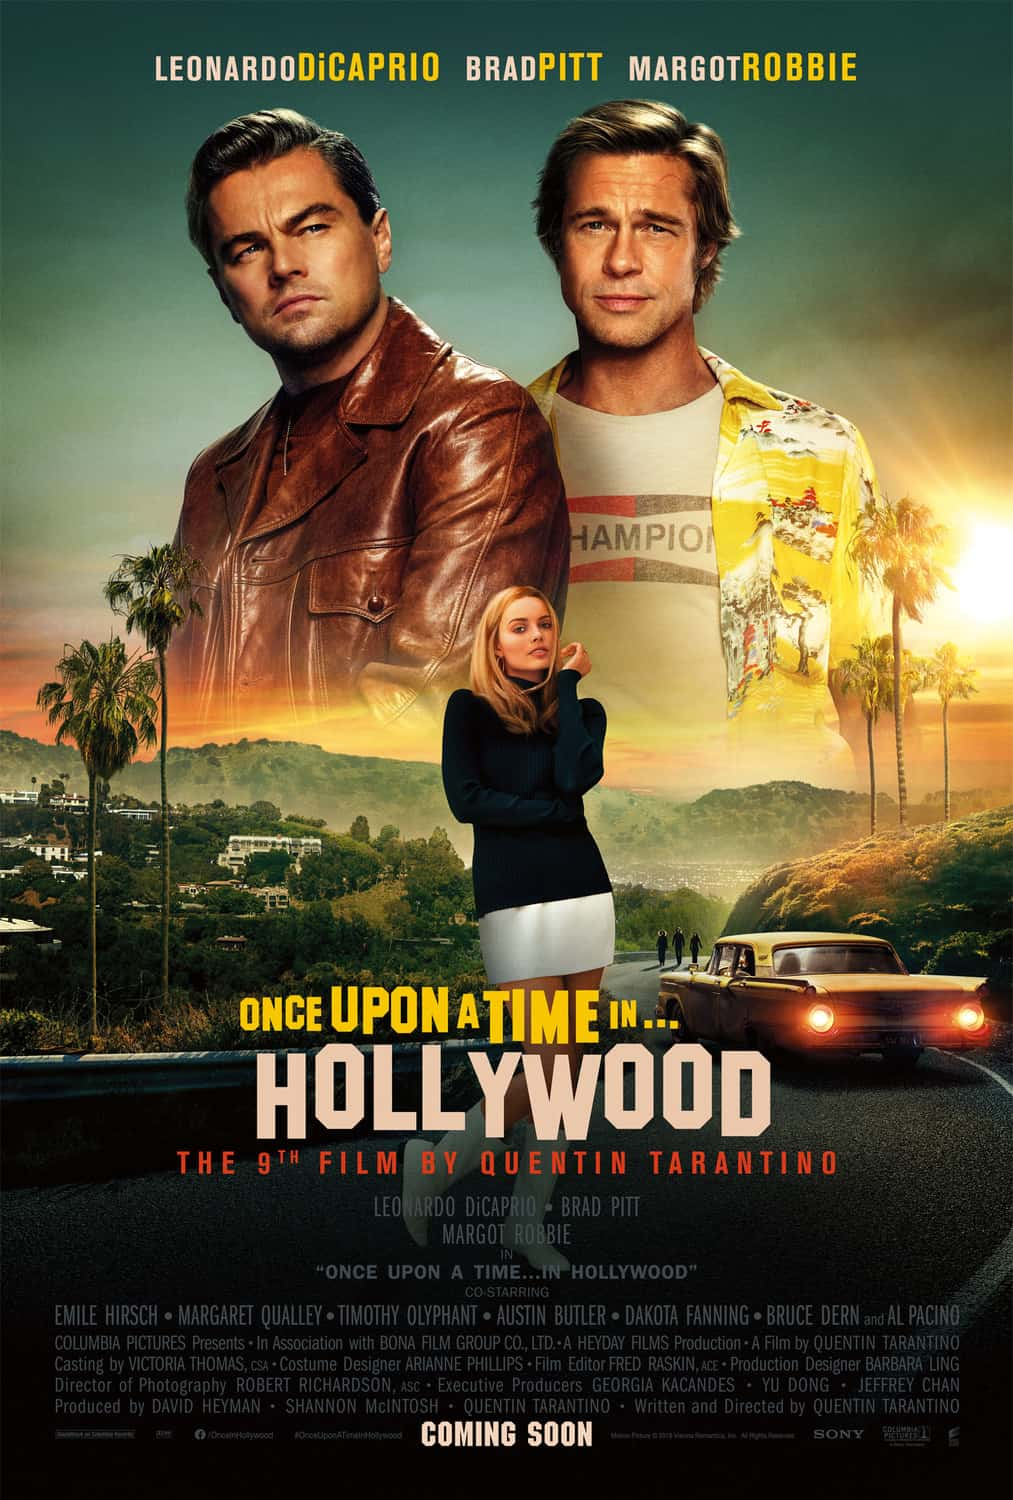 Once Upon a Time in Hollywood Poster 2 - ONCE UPON A TIME IN HOLLYWOOD 4-Hour Cut 'Probably' Coming Next Year